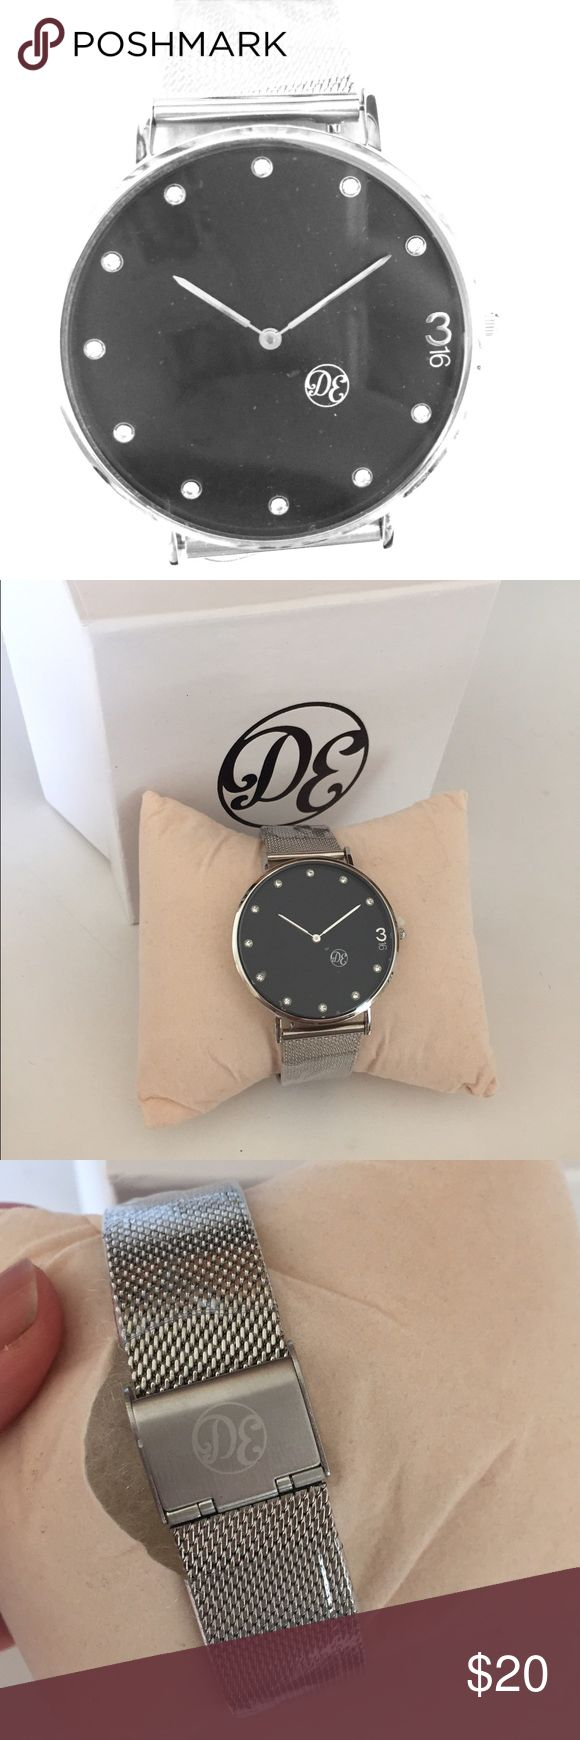 Mens Silver watch BRAND NEW Brand new DE silver watch. Studds are diamonds. Black face with a silver band - great gift for your man! DE Accessories Watches